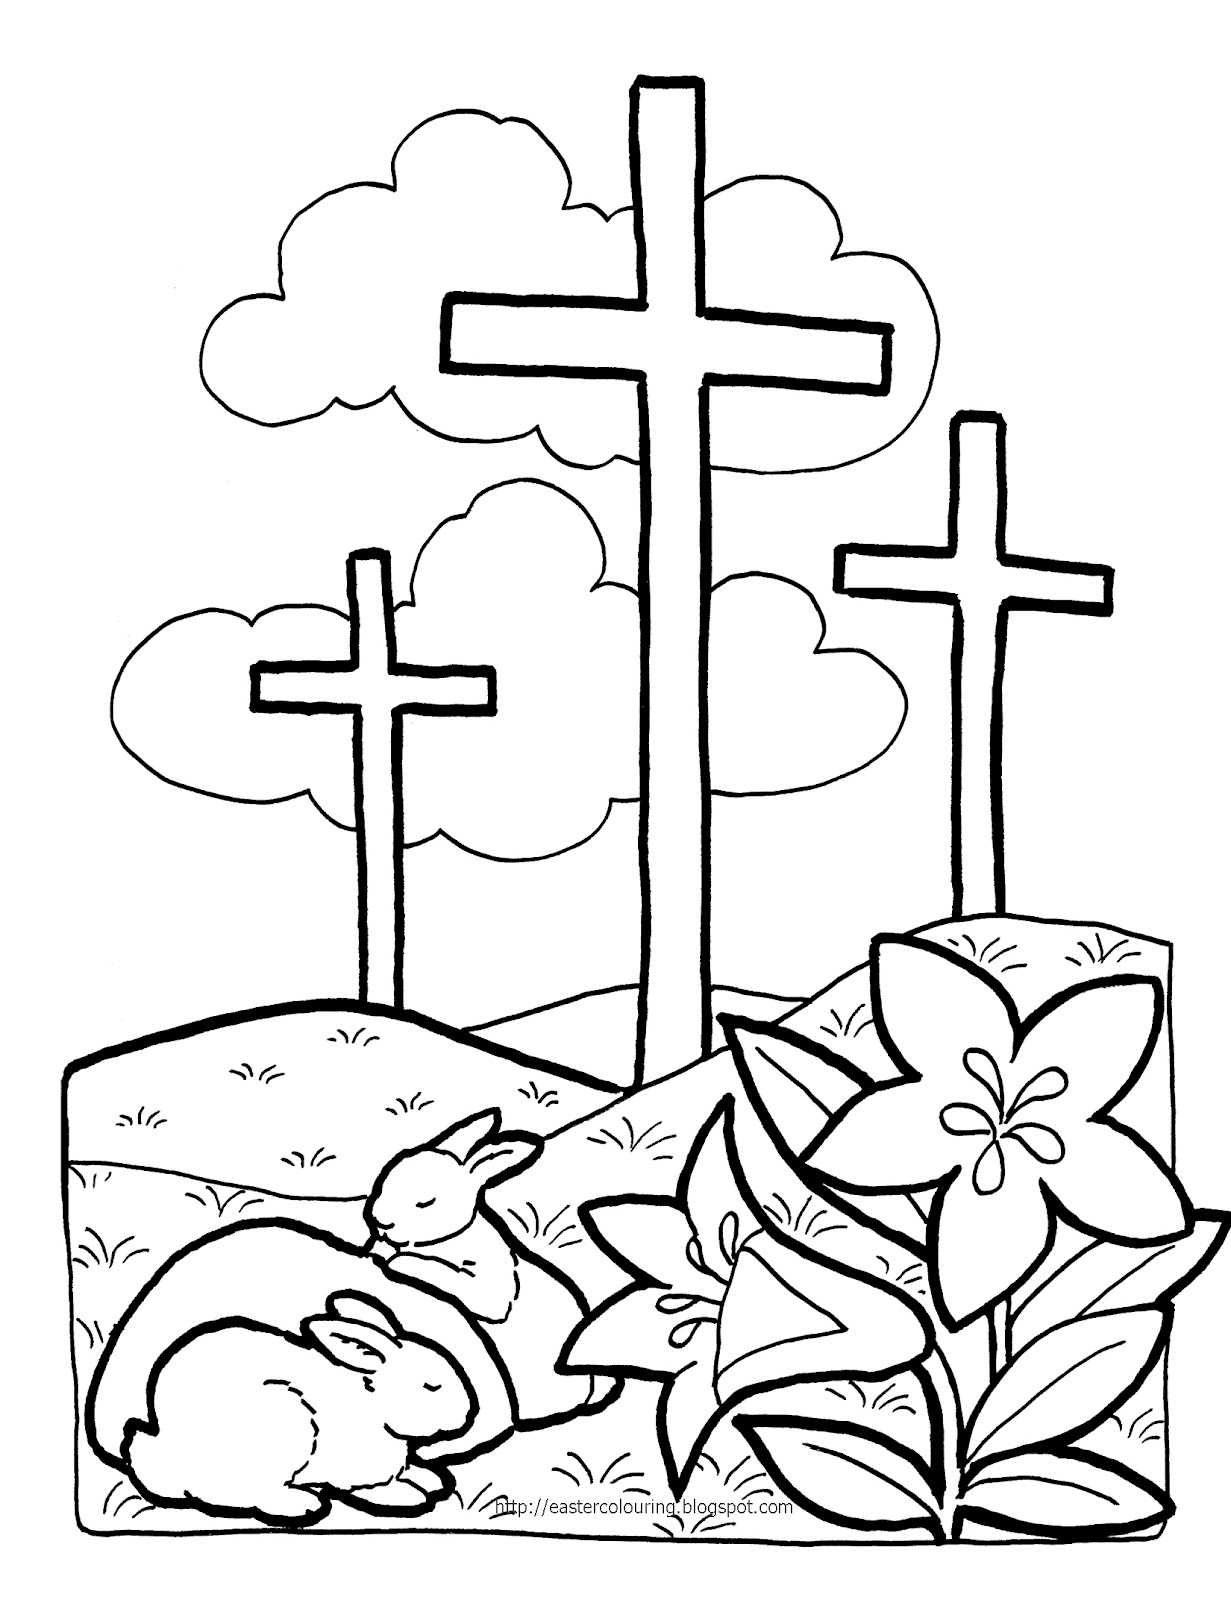 Coloring Pages Religious : Free printable christian coloring pages for kids best